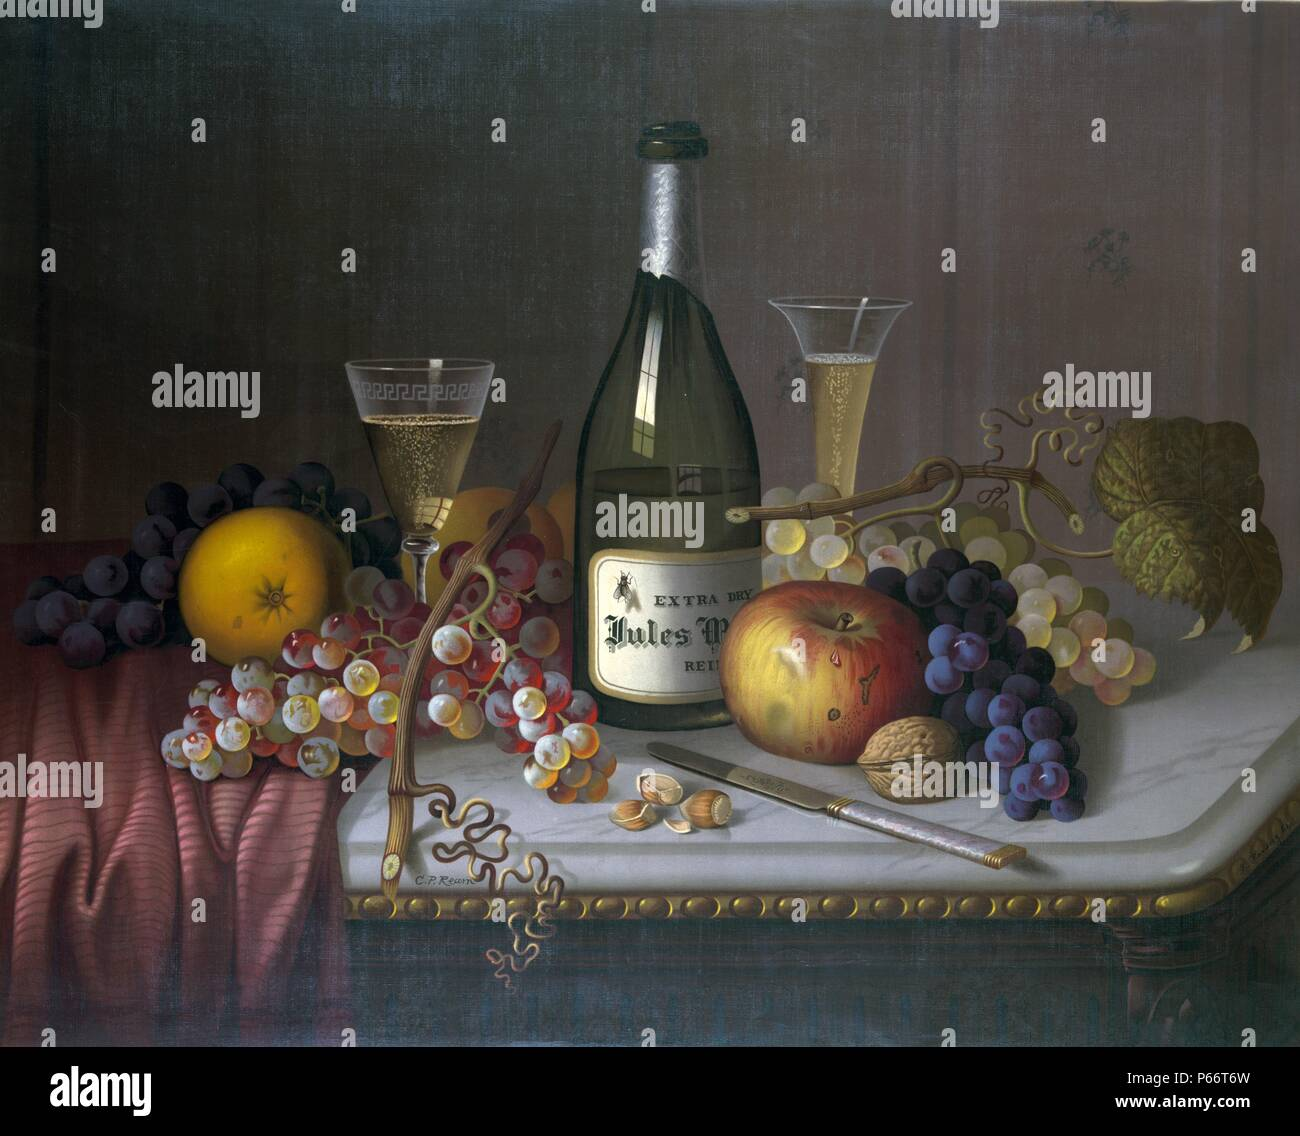 Still life by Louis Prang & Company of Boston 1870. The collective image is very modern in its repetition and perspective, and also illustrates the intensity of the chromolithographic process. Louis Prang (March 12, 1824 – September 14, 1909) was an Amer - Stock Image